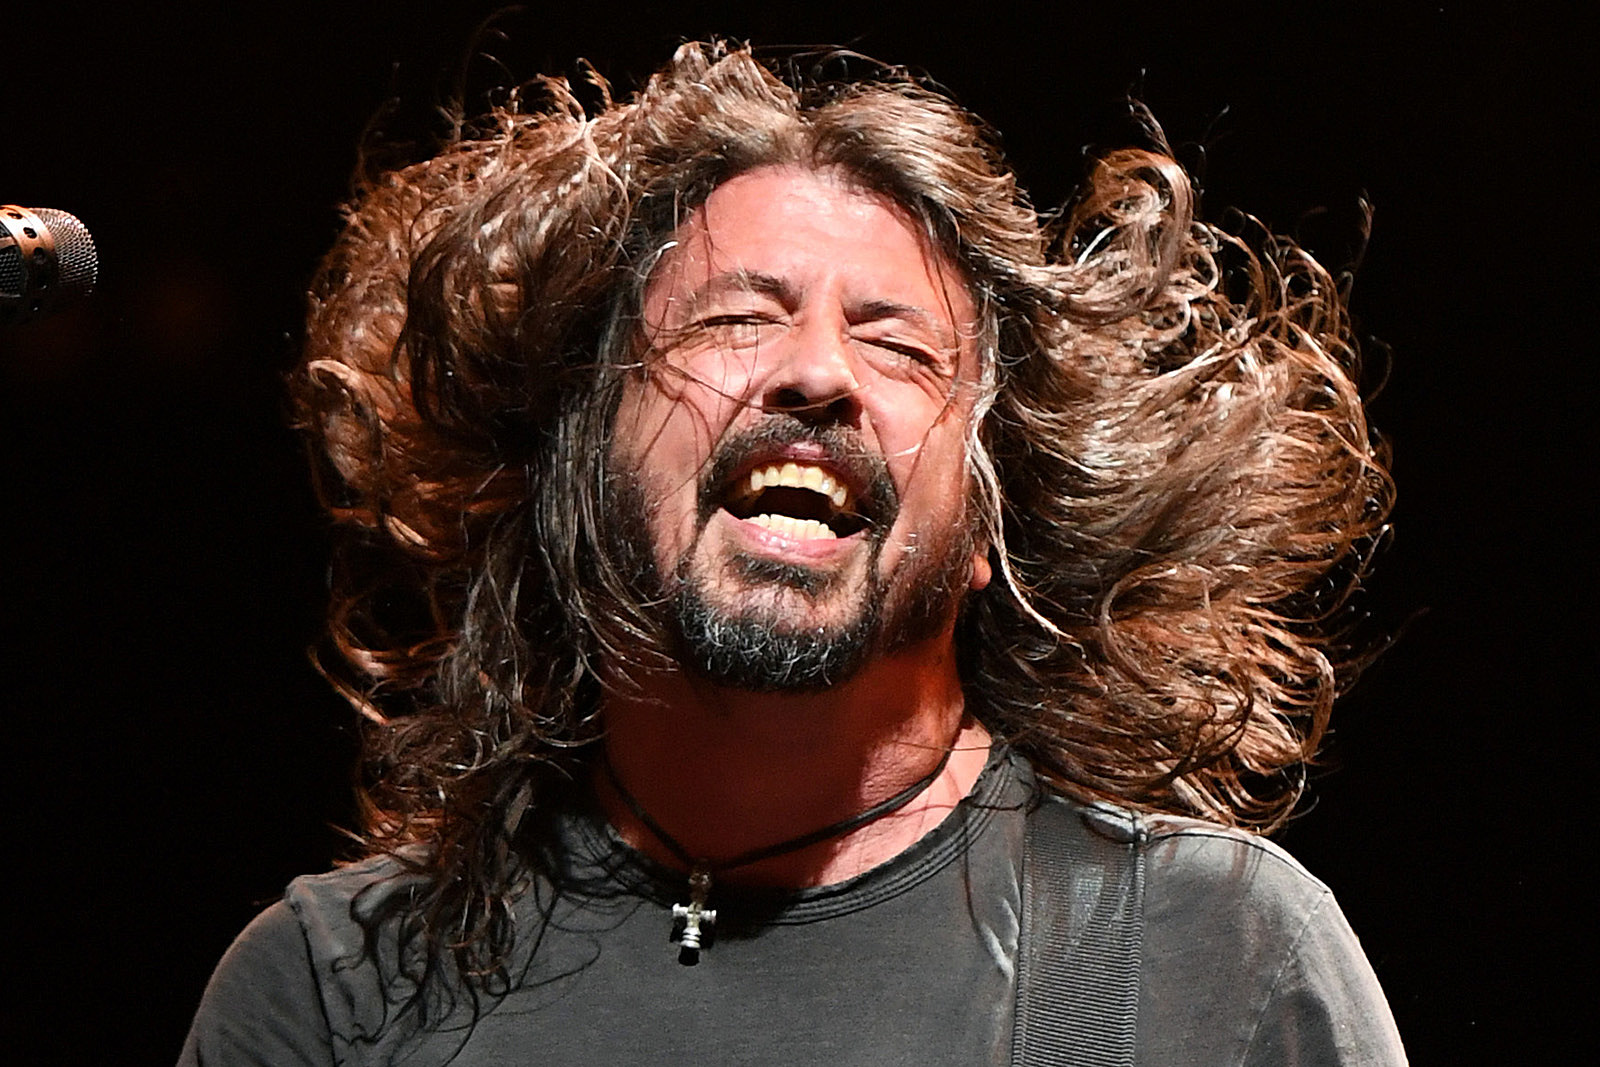 Dave Grohl Upset Dentist by Drumming With His Teeth